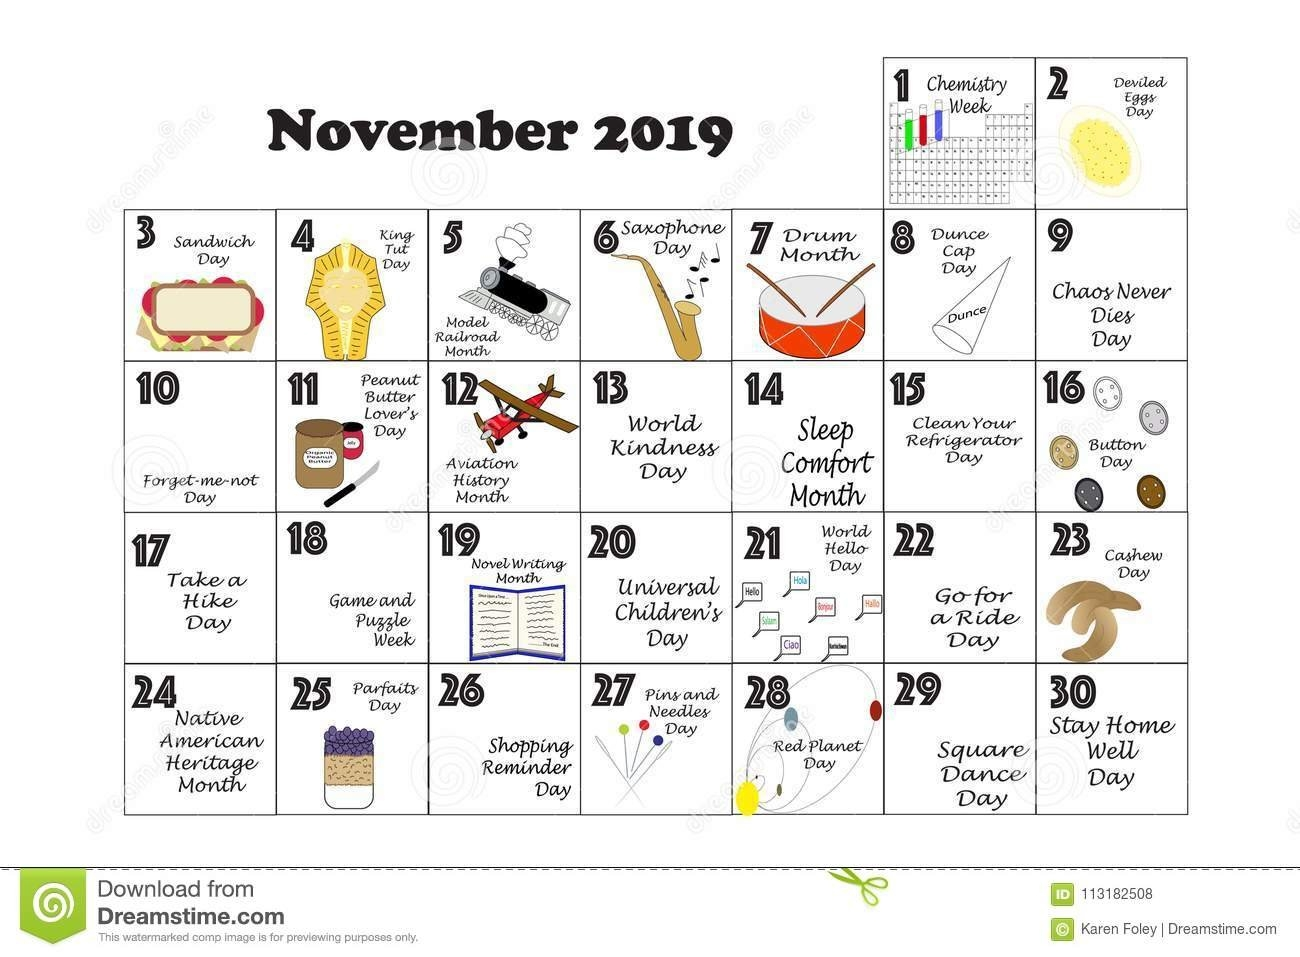 November 2019 Quirky Holidays And Unusual Events Stock Illustration Calendar 2019 Events